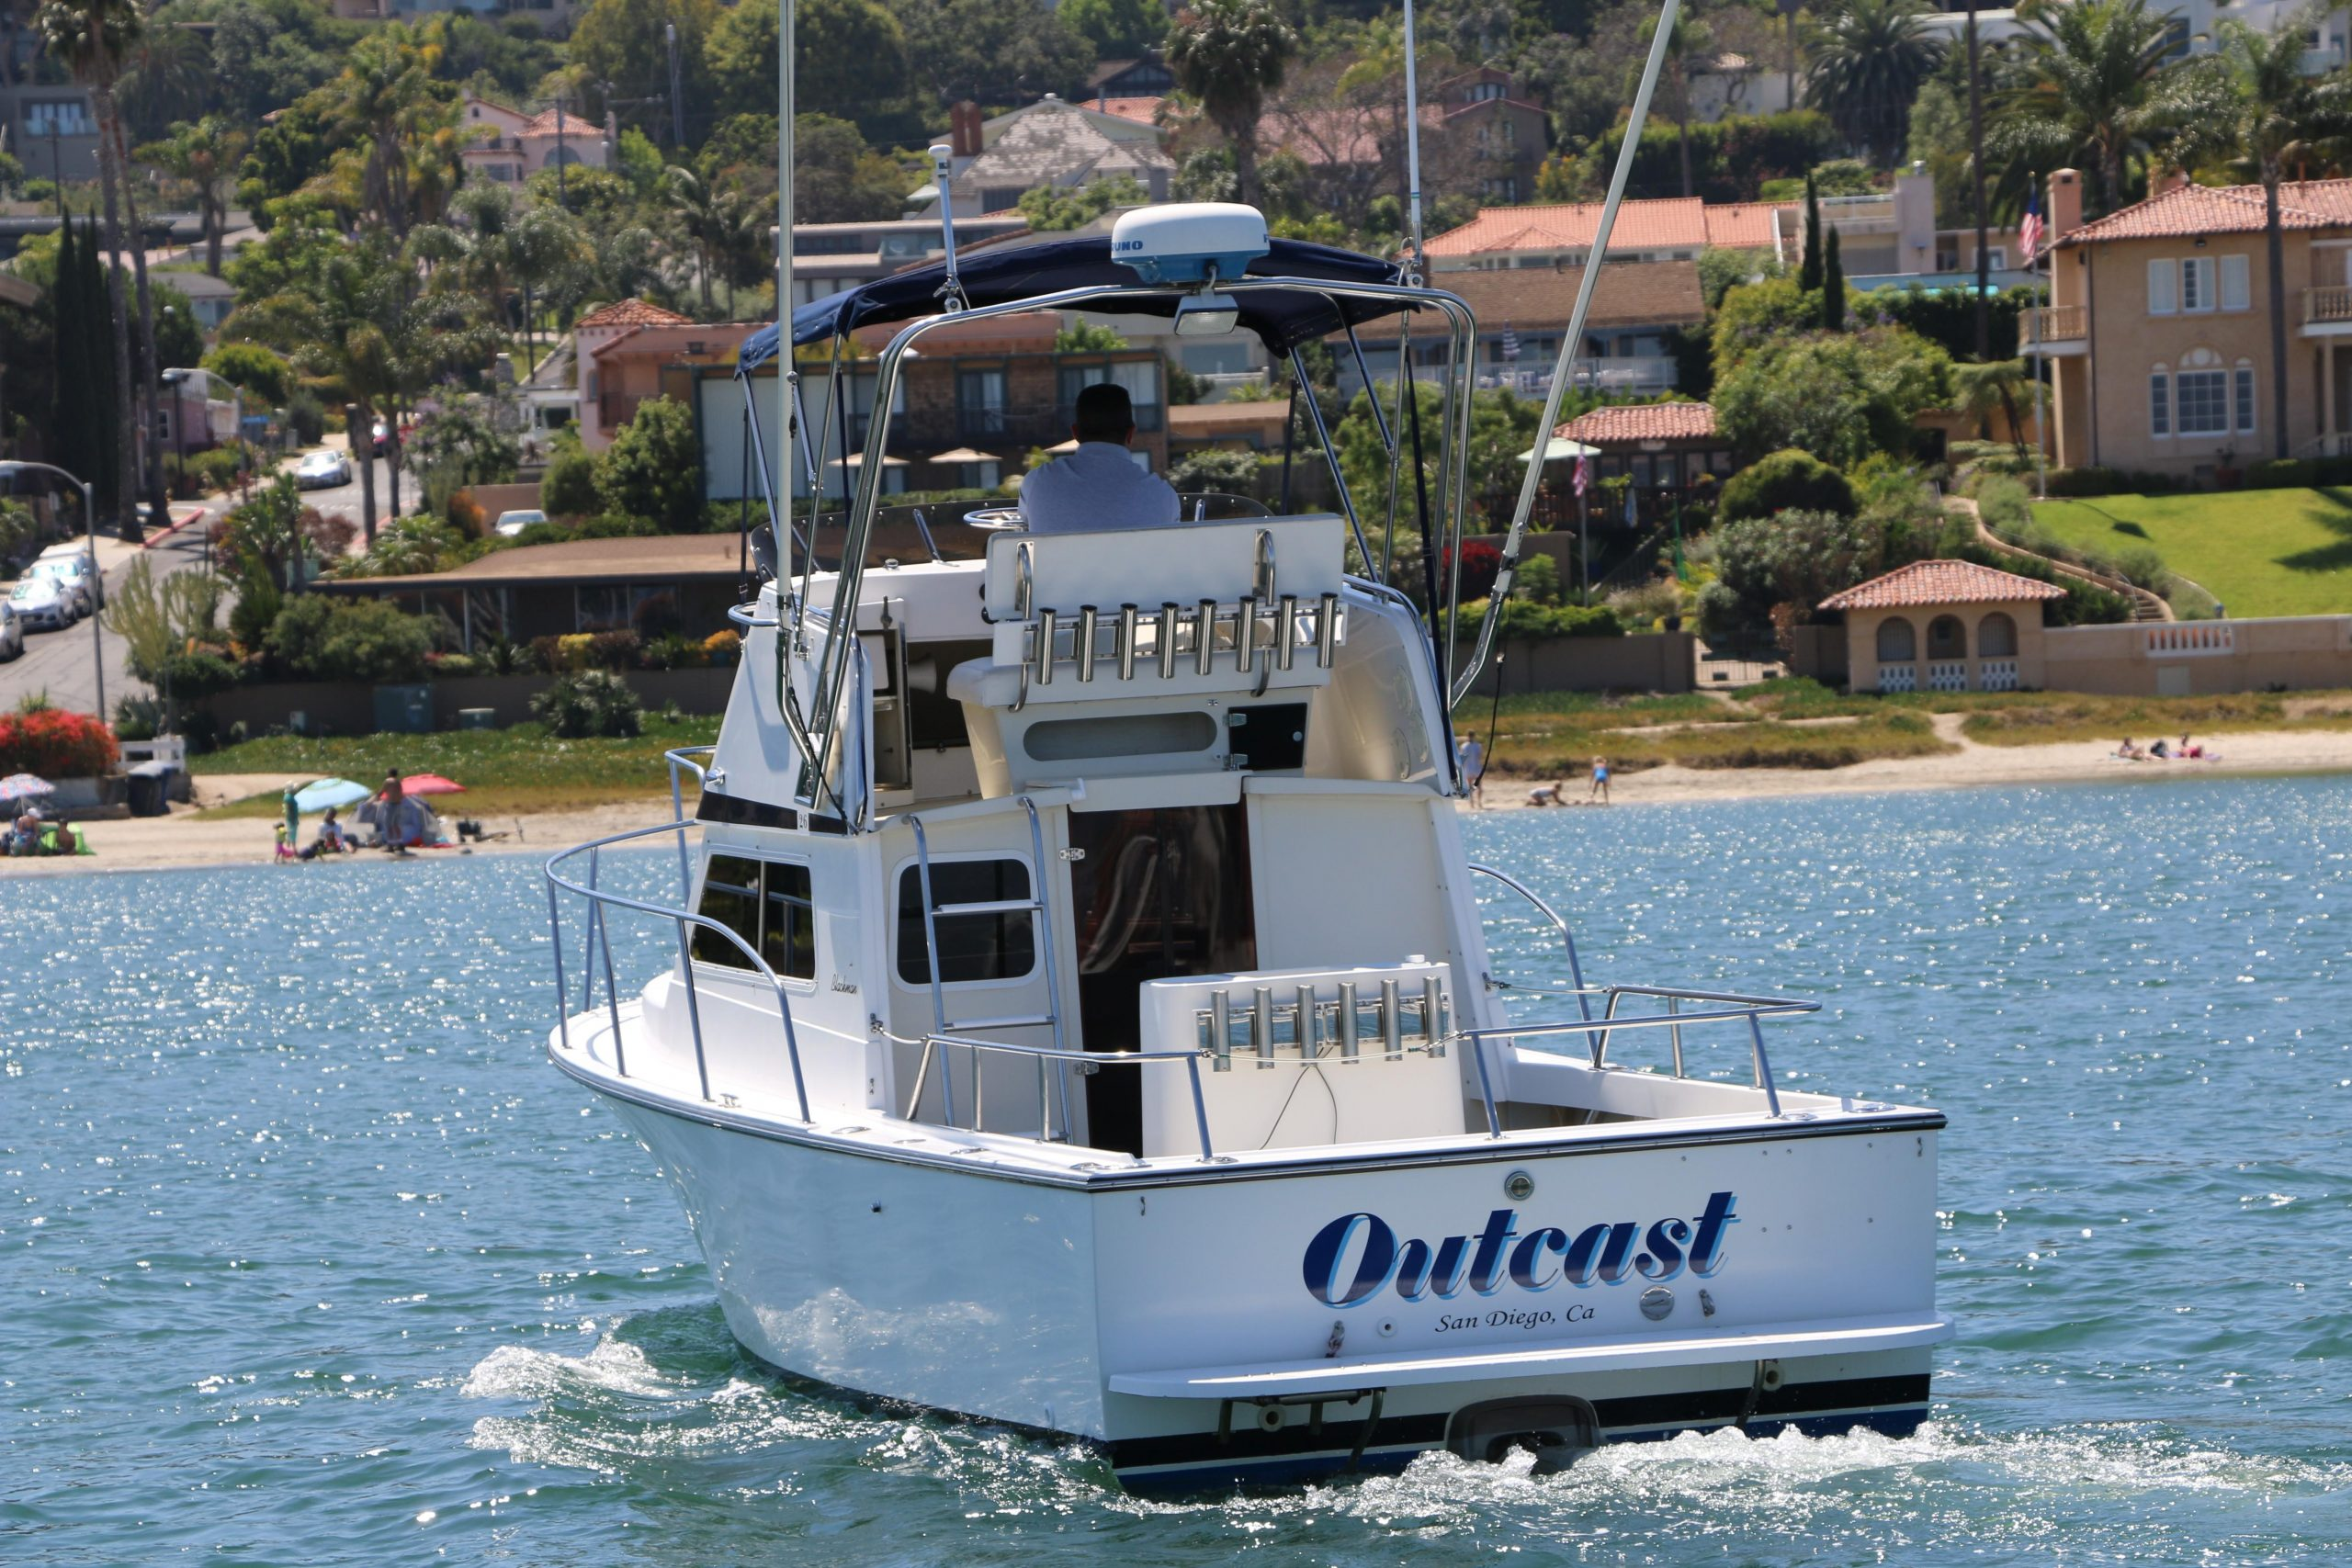 Outcast is a Blackman Billfisher Yacht For Sale in San Diego-0